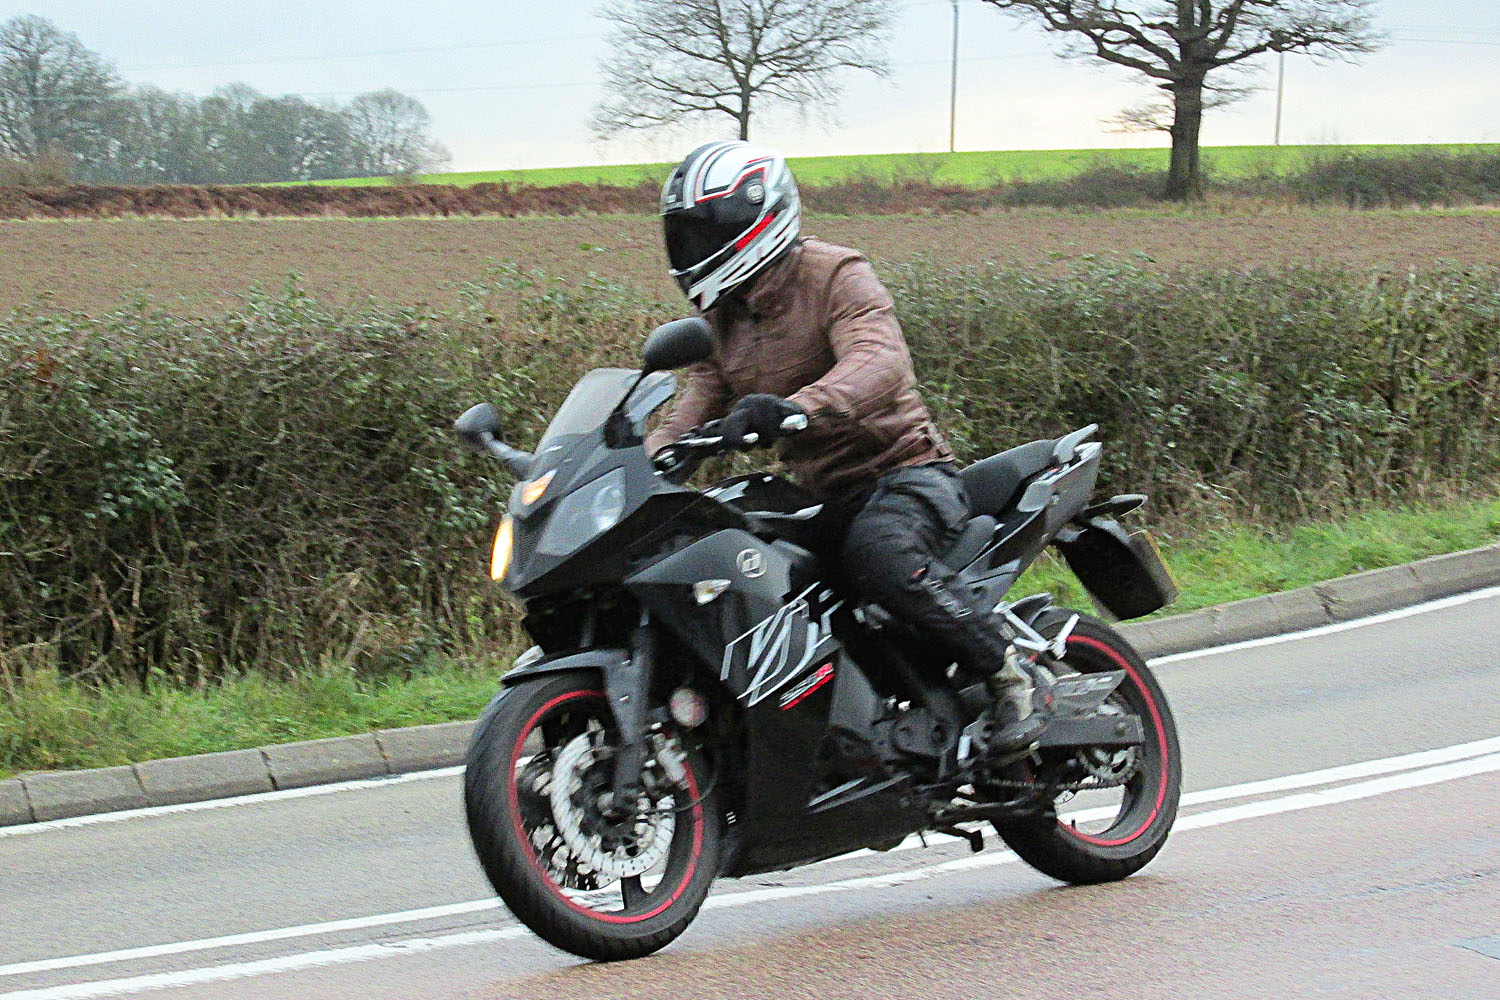 Comparison Test Kawasaki Ninja 300 Vs Visordown